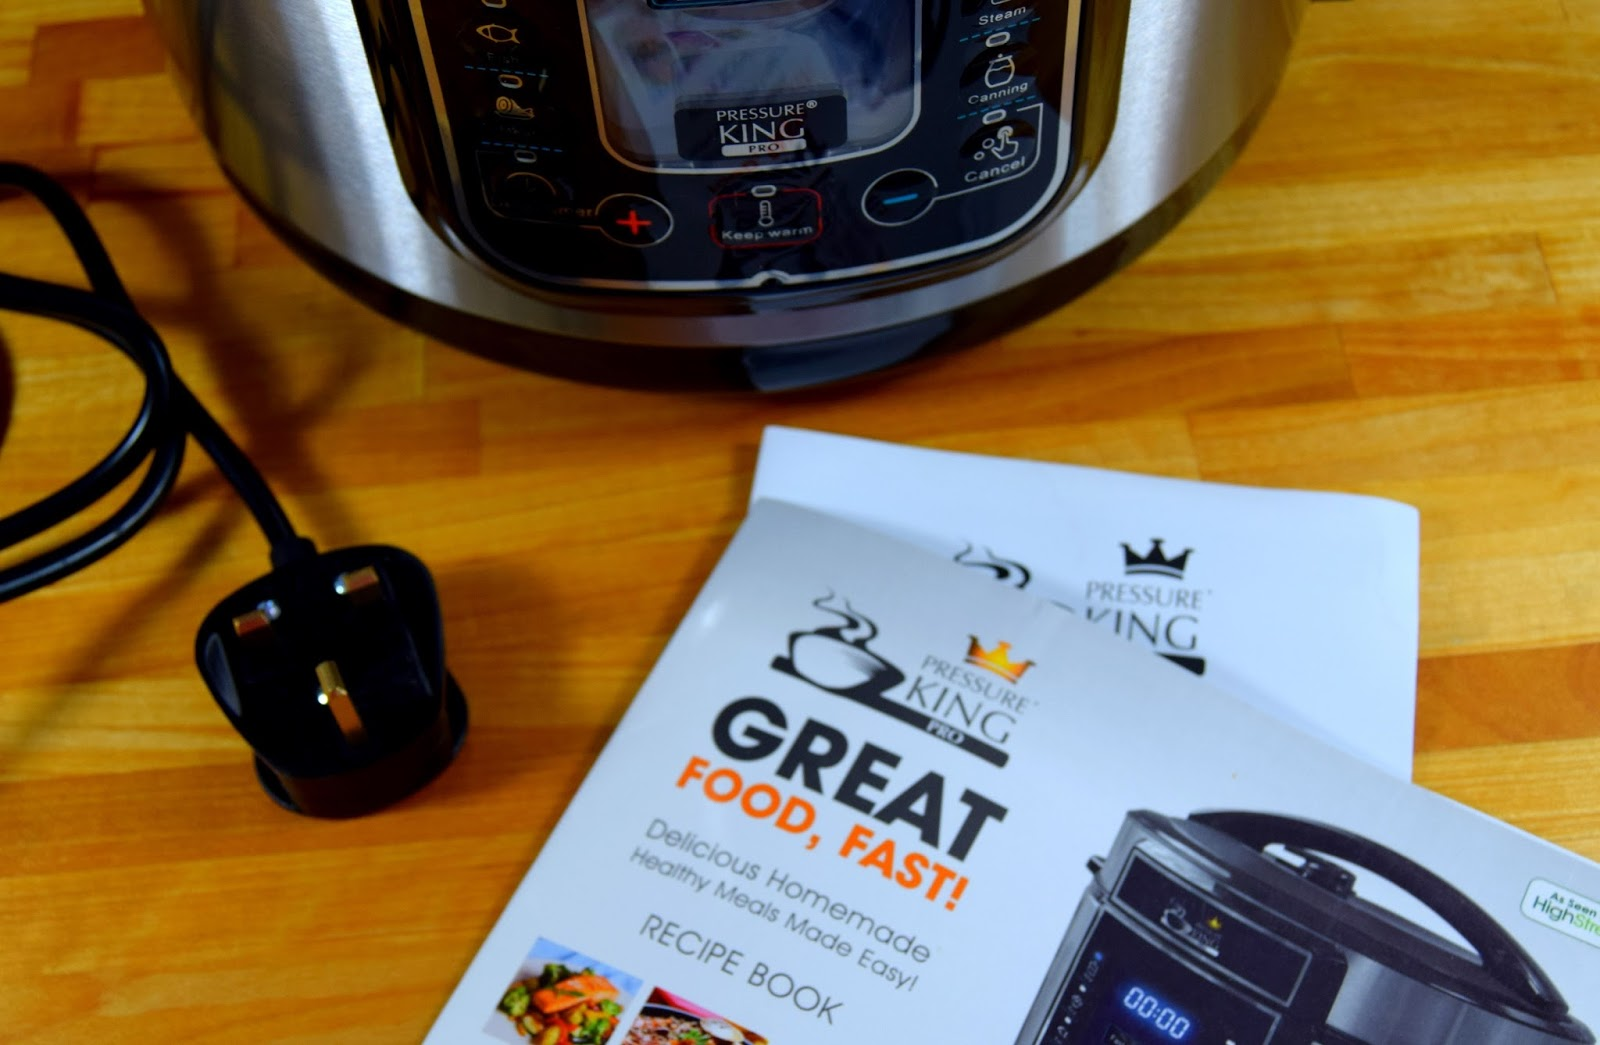 Pressure King Pro Review: A Cool Kitchen Gadget